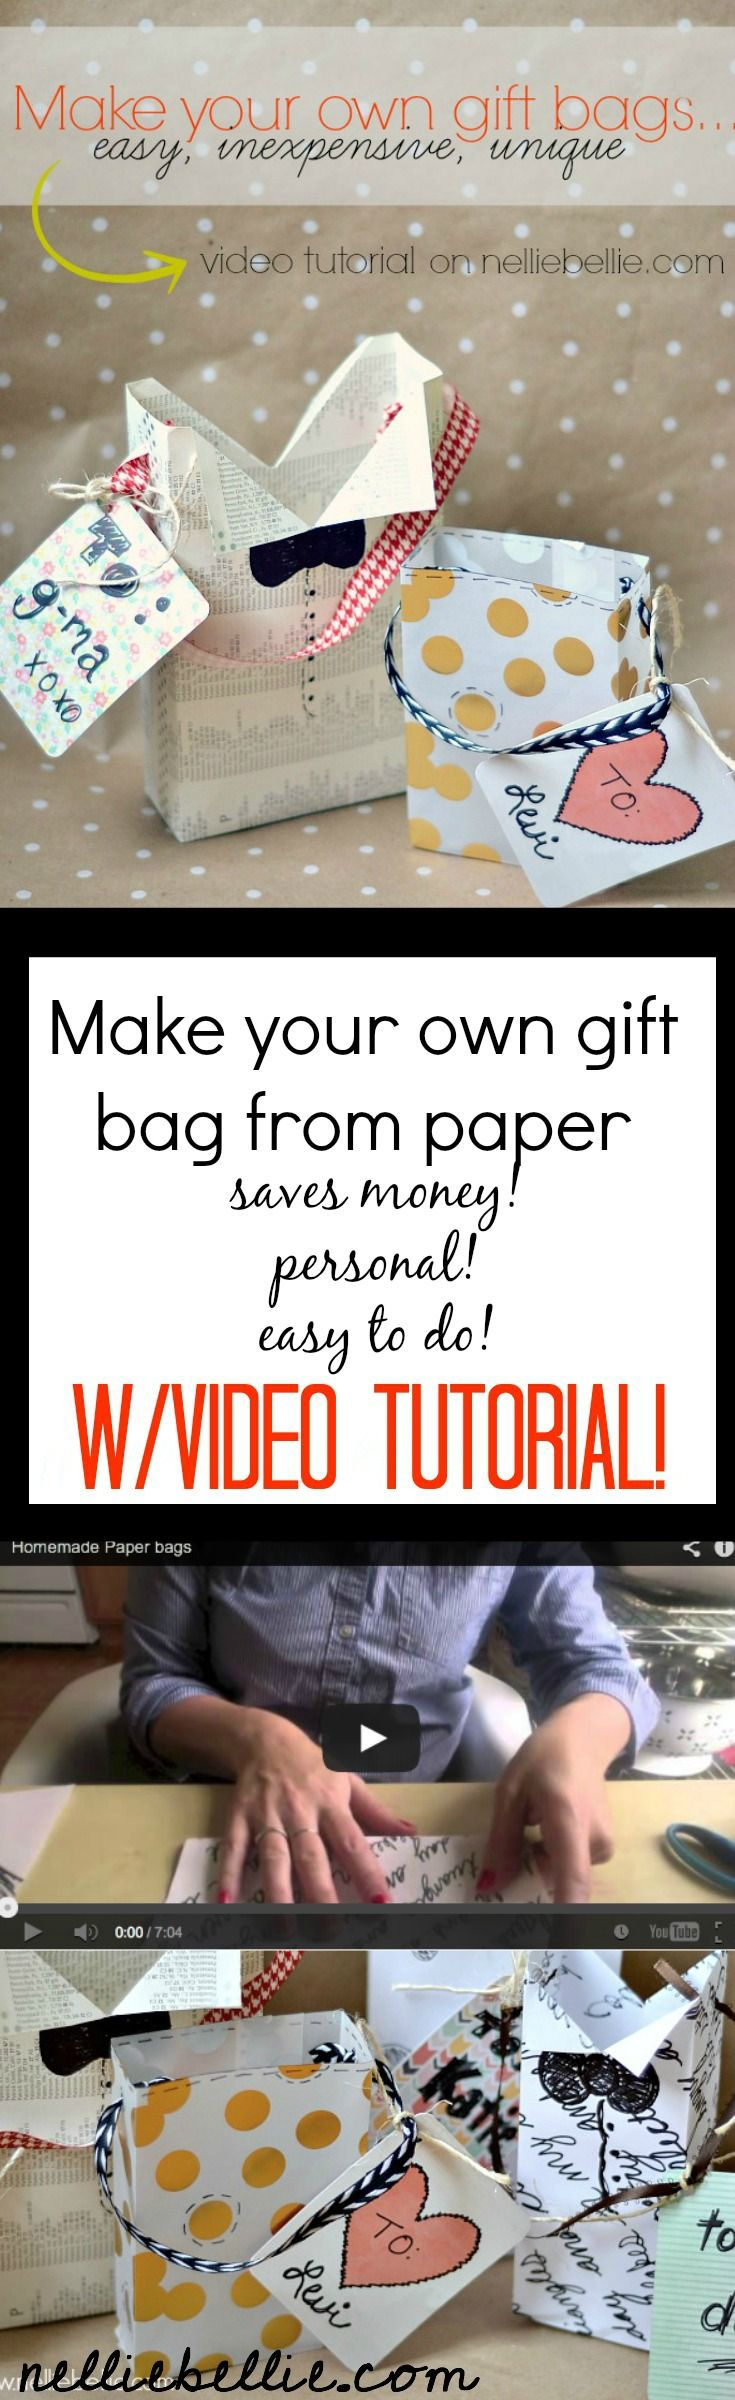 How to make your own gift bags from any kind of paper! A great idea for a personal touch to a gift! With video tutorial.